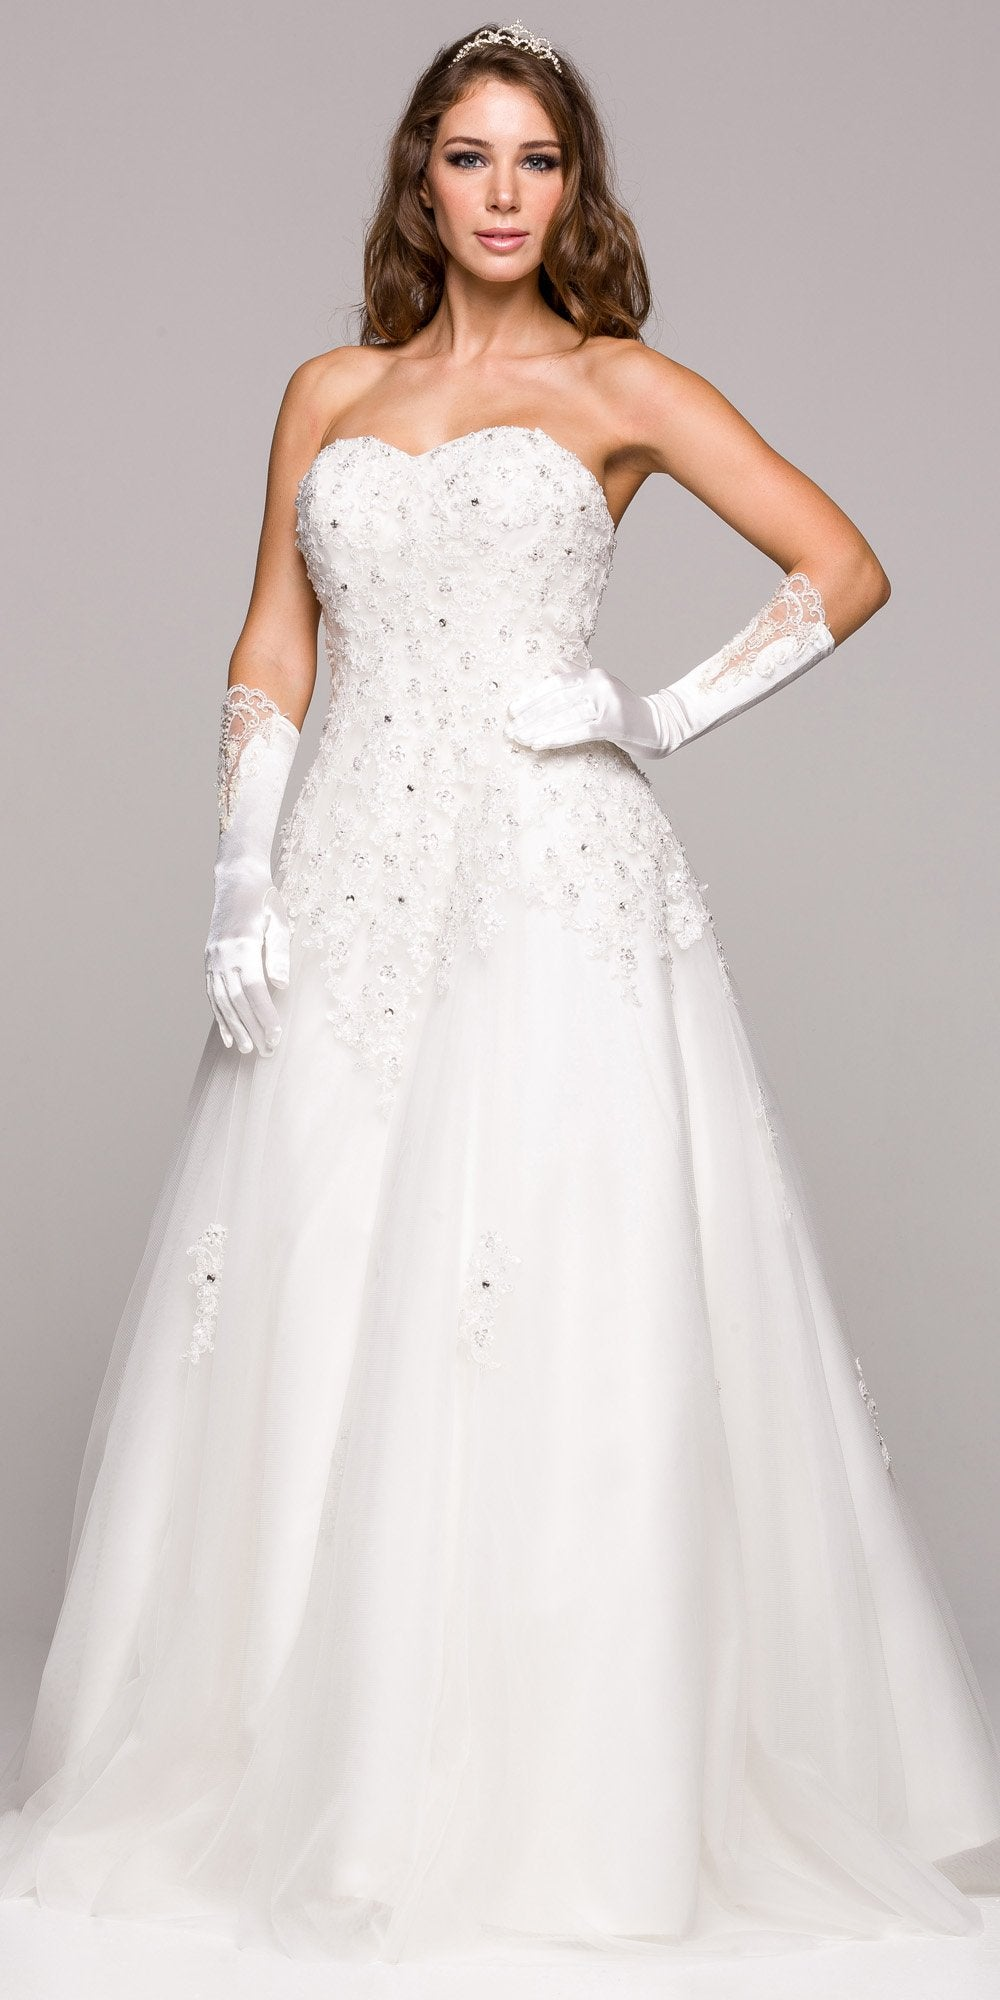 Ivory Embroidered Ball Gown Wedding Dress Sweetheart Neck Strapless ...